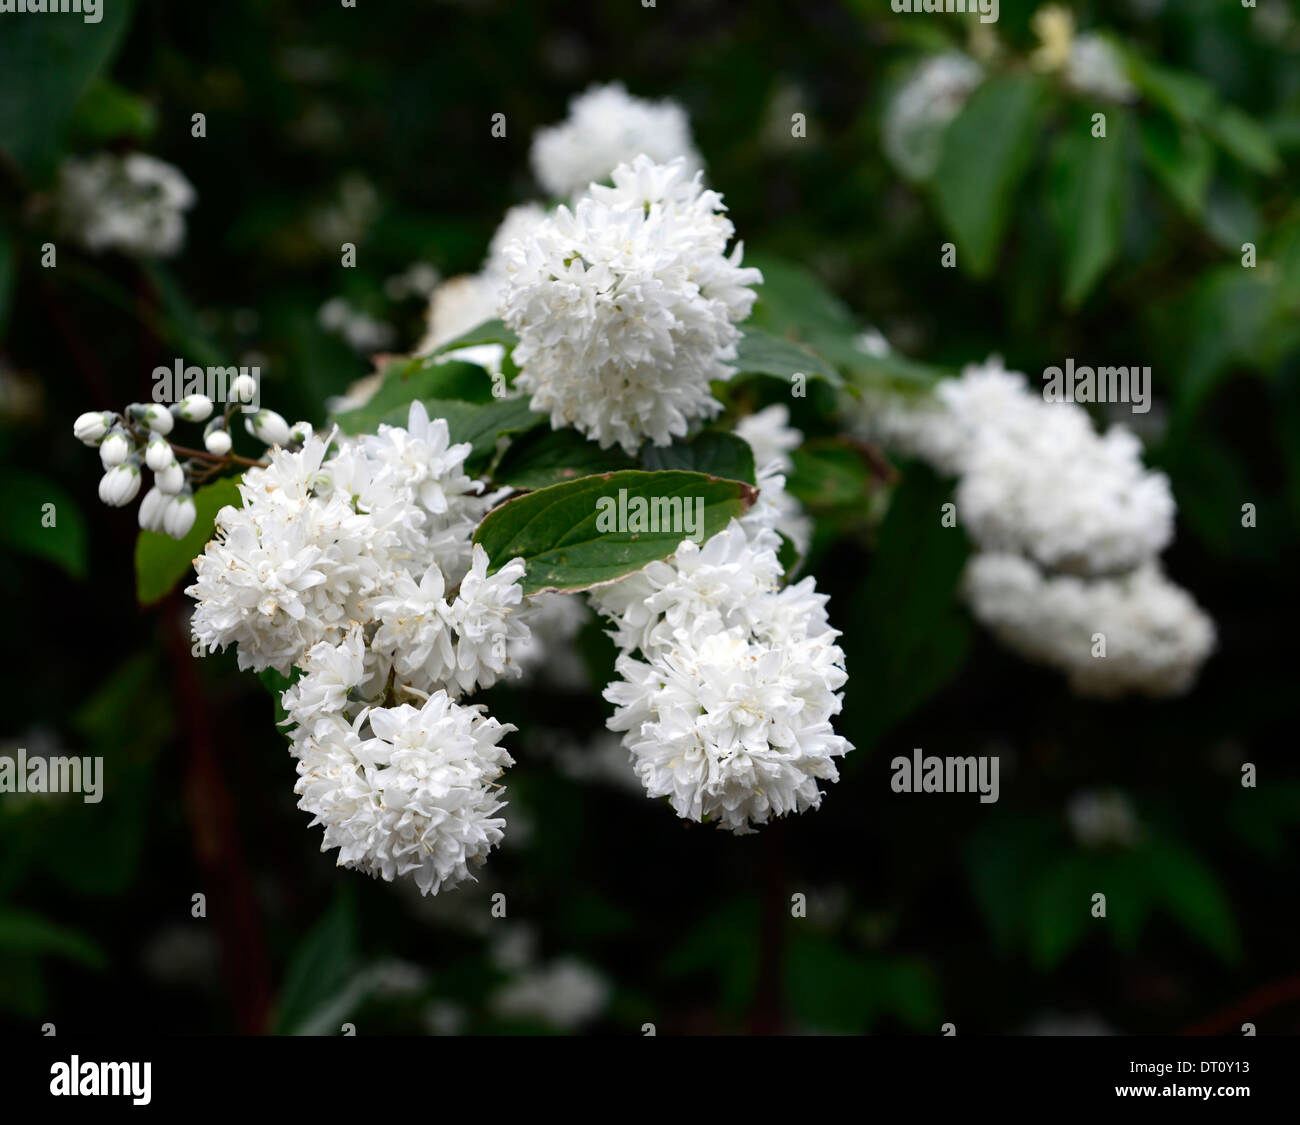 Deutzia x magnifica white flowers flower flowering spring deciduous deutzia x magnifica white flowers flower flowering spring deciduous shrub shrubs green leaves foliage deutzias mightylinksfo